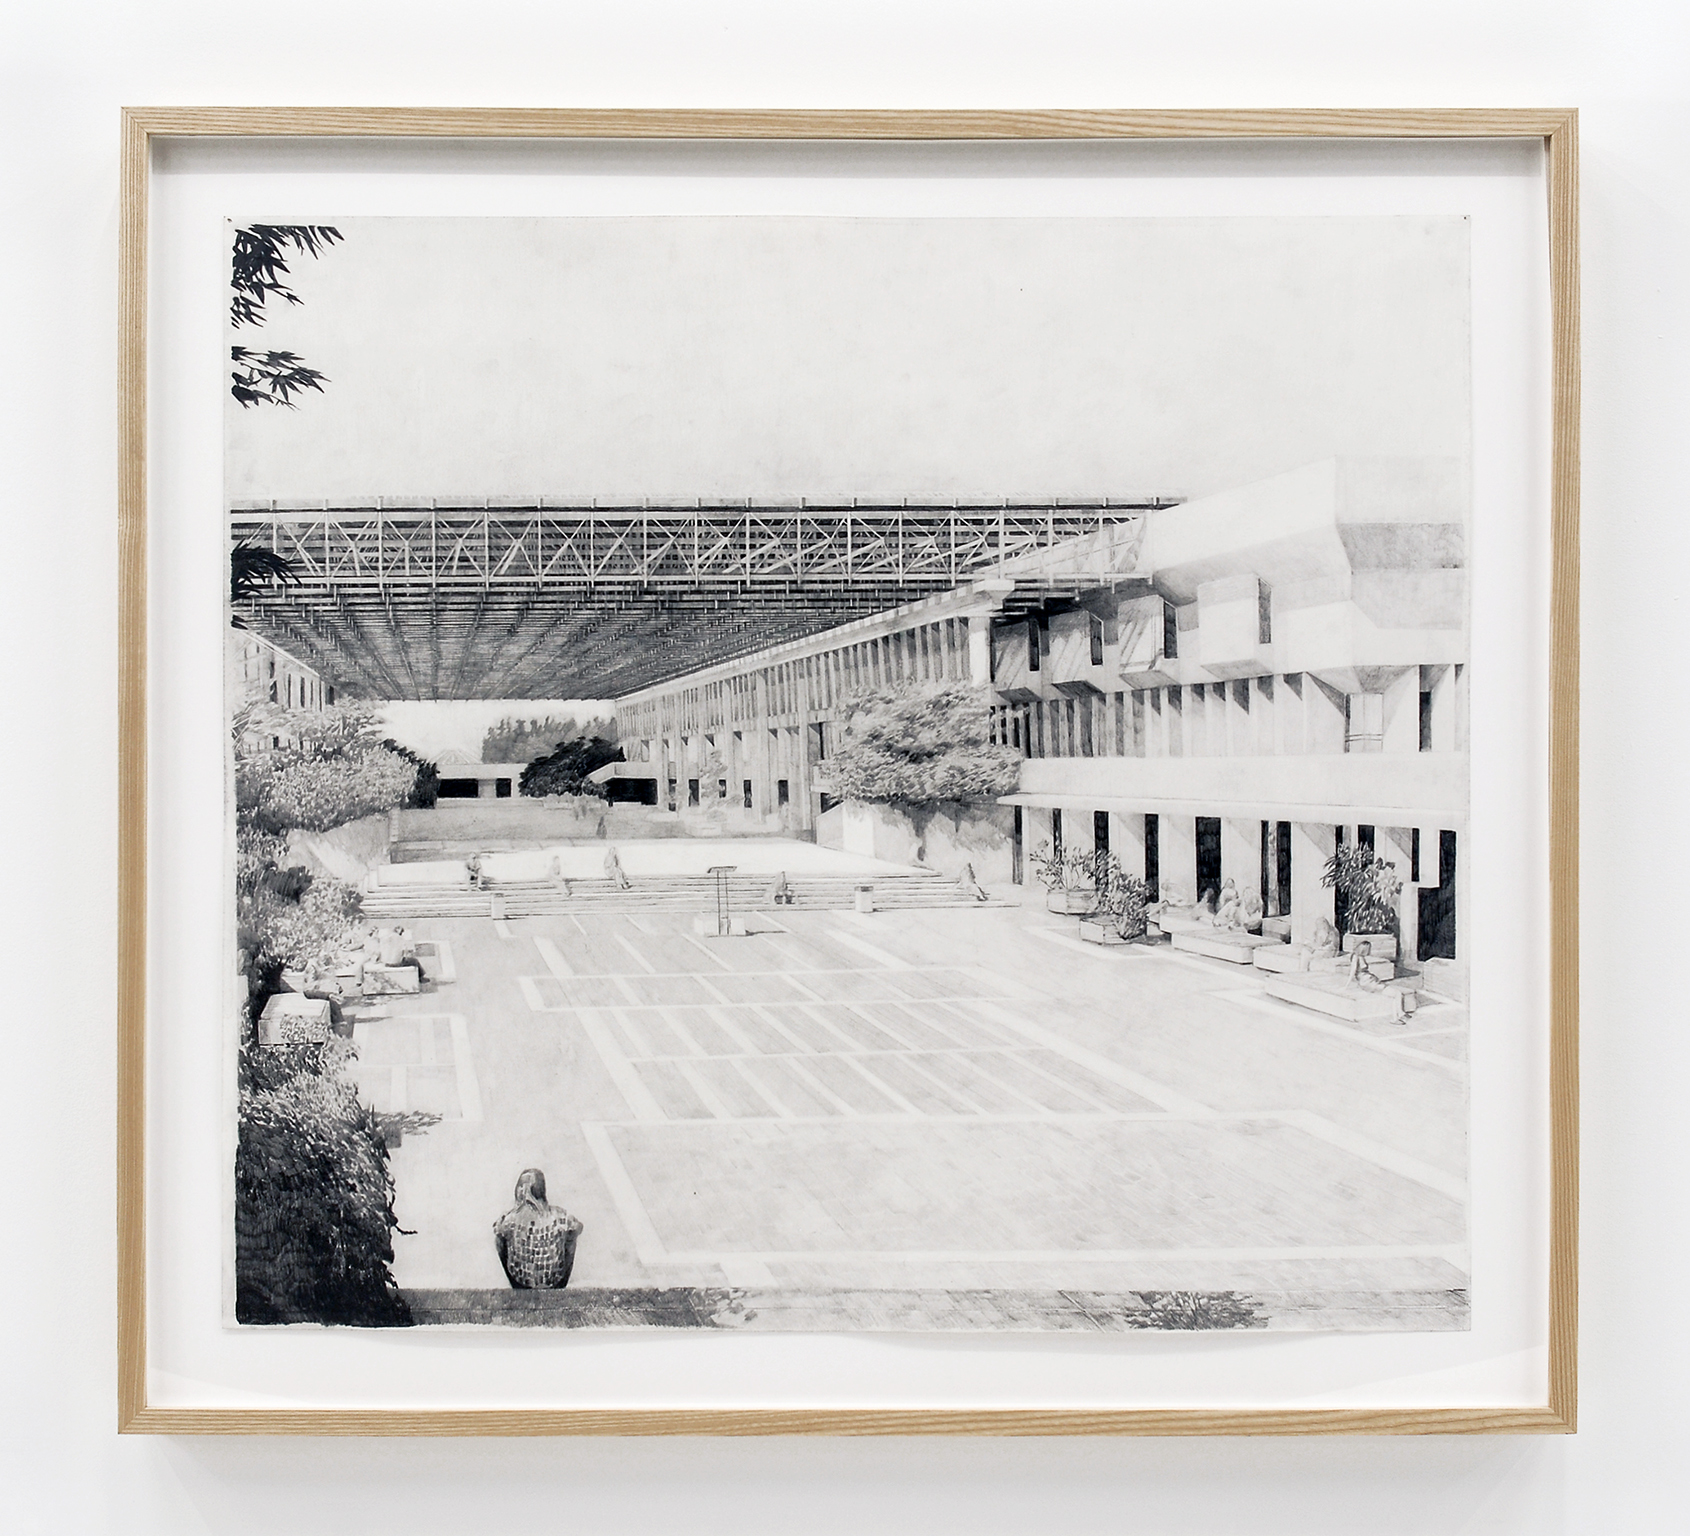 Alex Morrison, The Poetics of Grey (No. 4), 2007, graphite on paper, 40 x 44 in. (102 x 112 cm) by